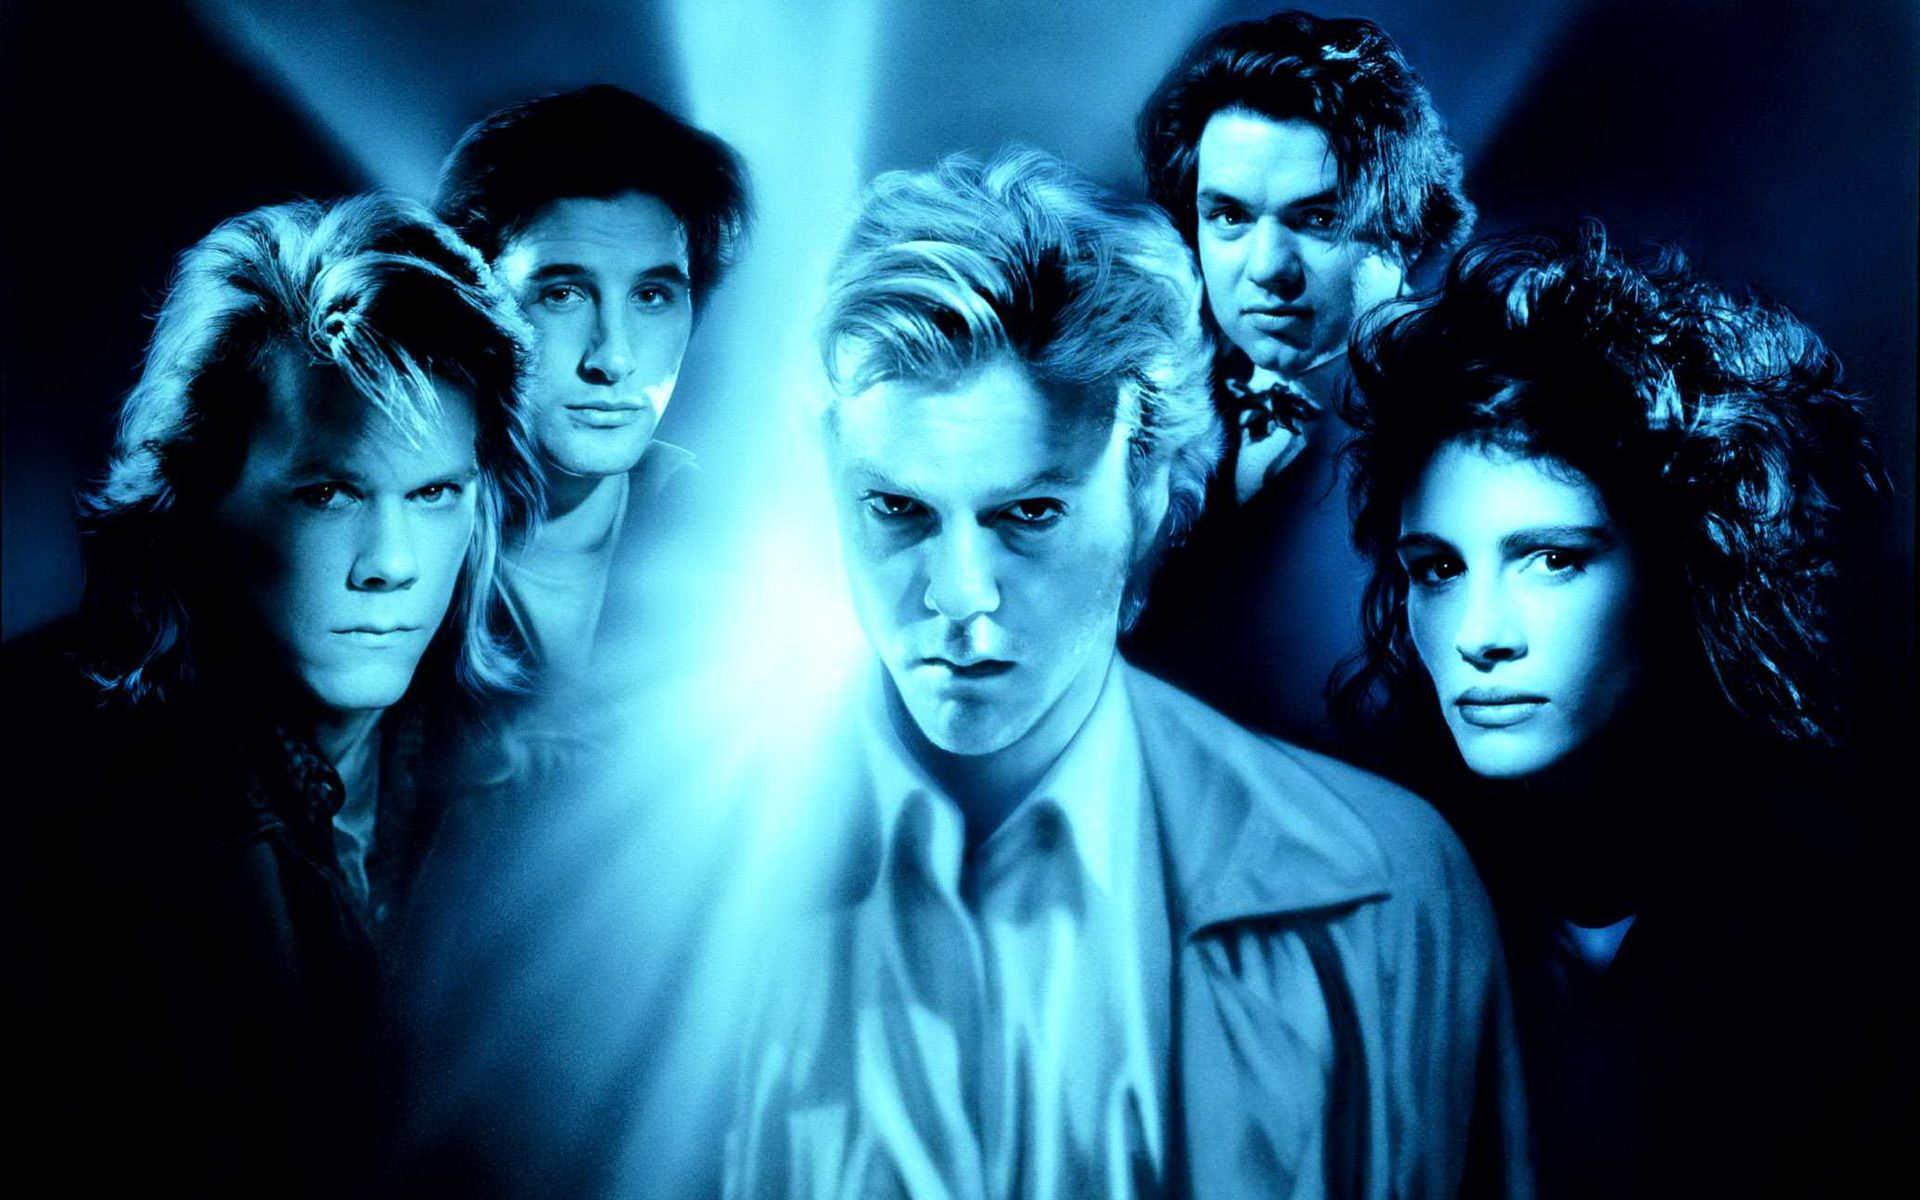 flatliners ~ download movie free quality hd | minute films | pinterest